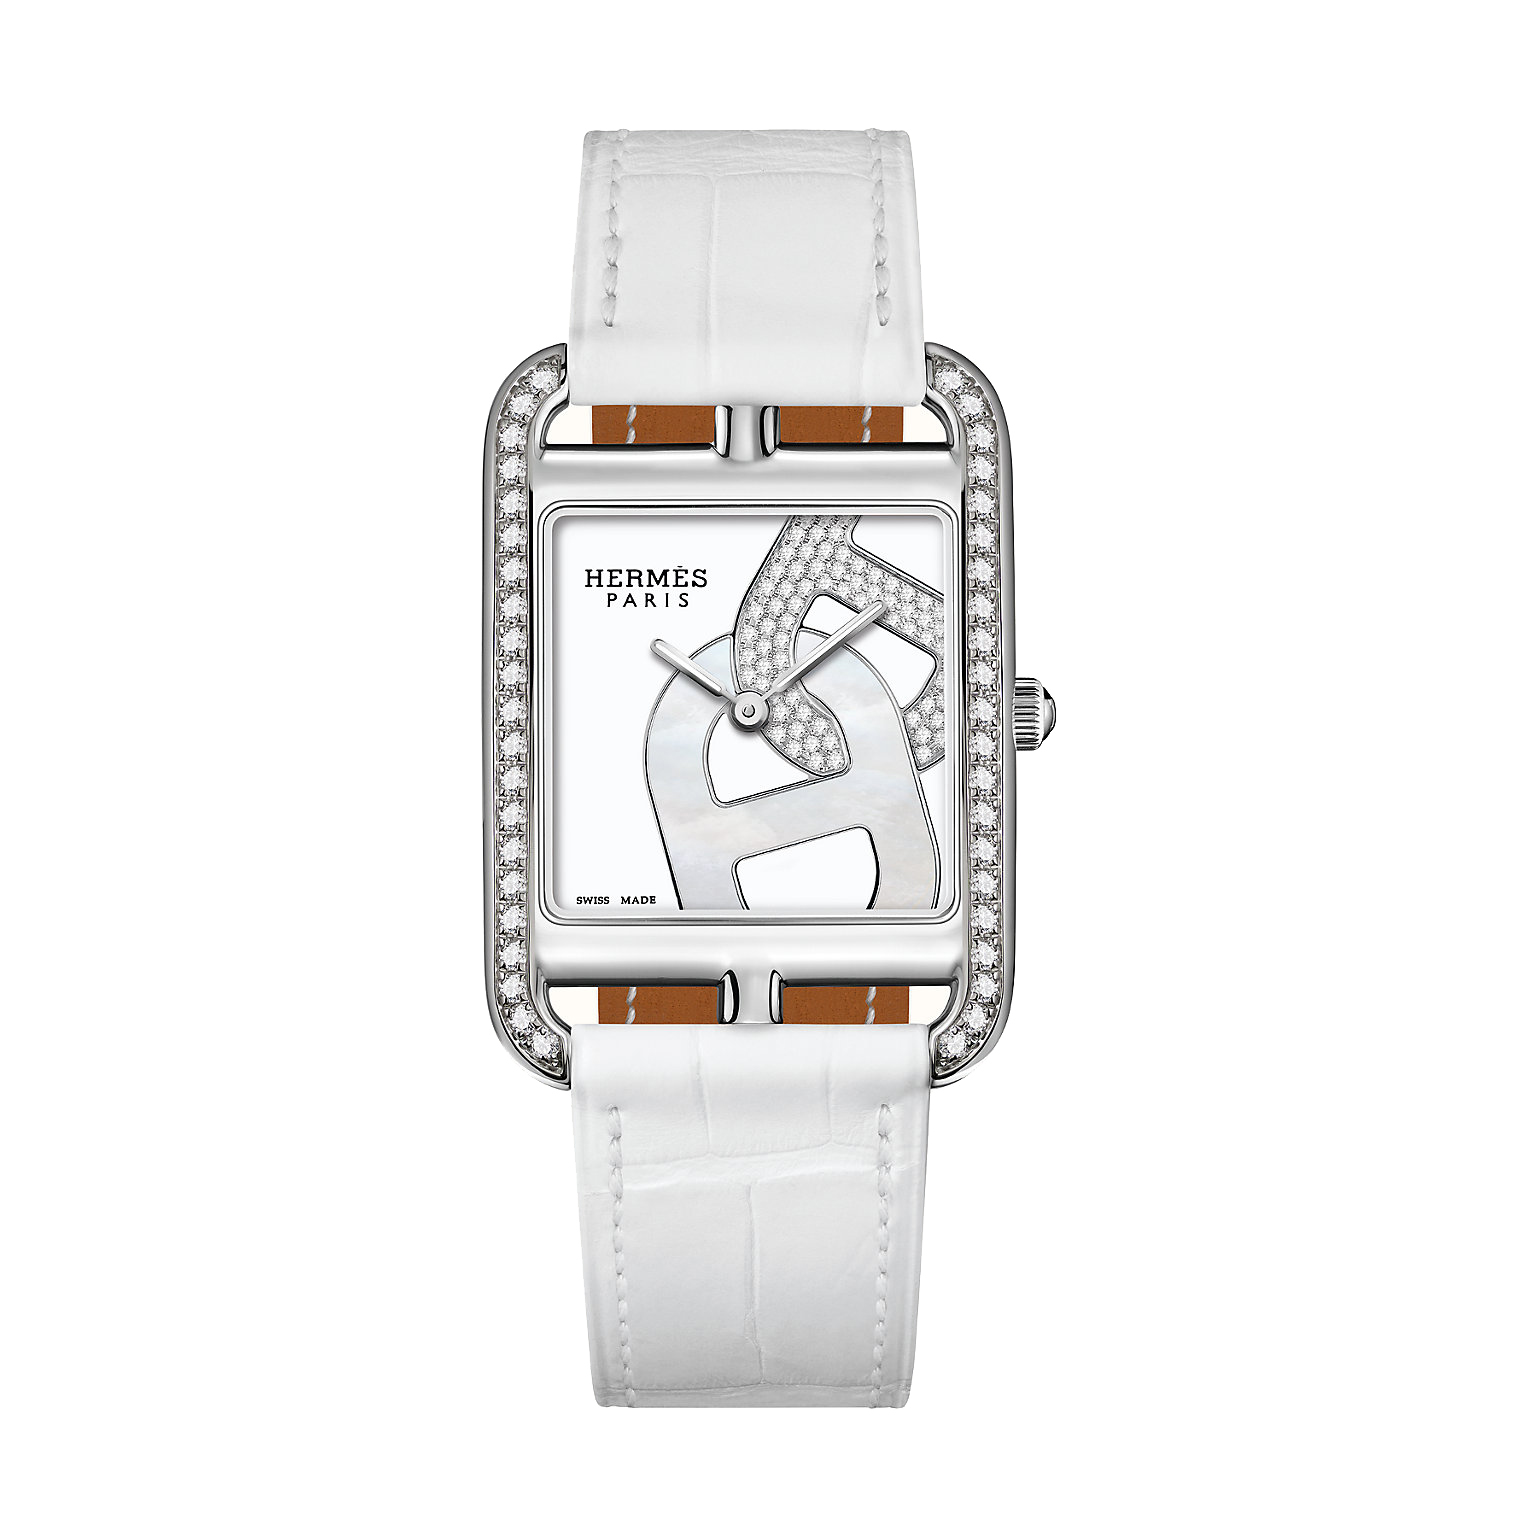 Hermès-cape-cod-chaine-d-ancre-joaillier-29-x-29mm-Hall-of-Time-047234WW00